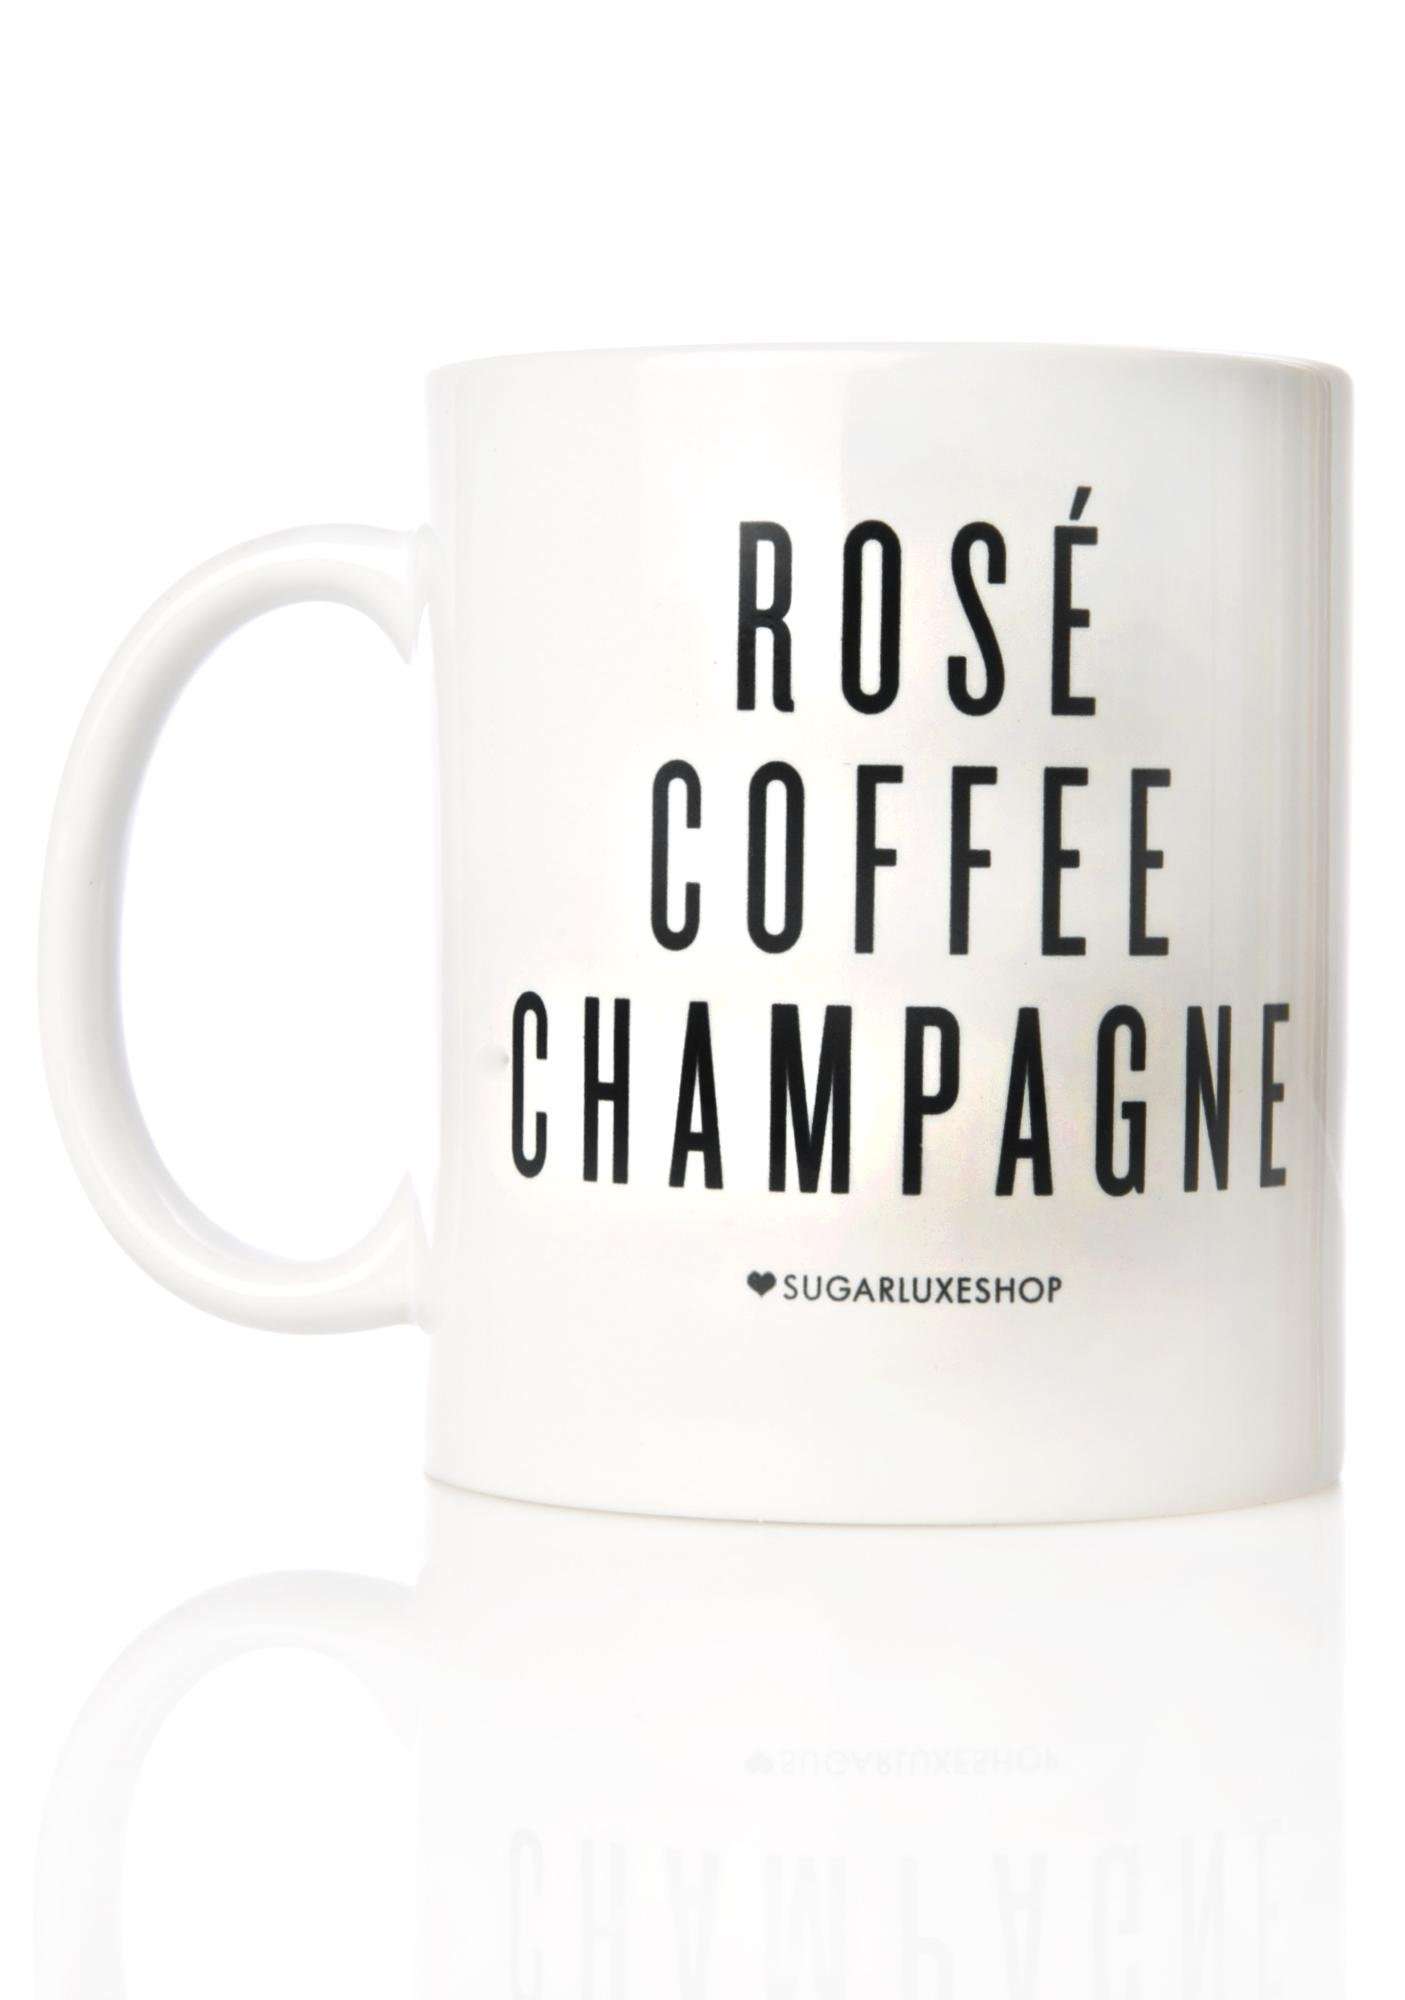 SugarLuxeShop Rosé Coffee Champagne Mug